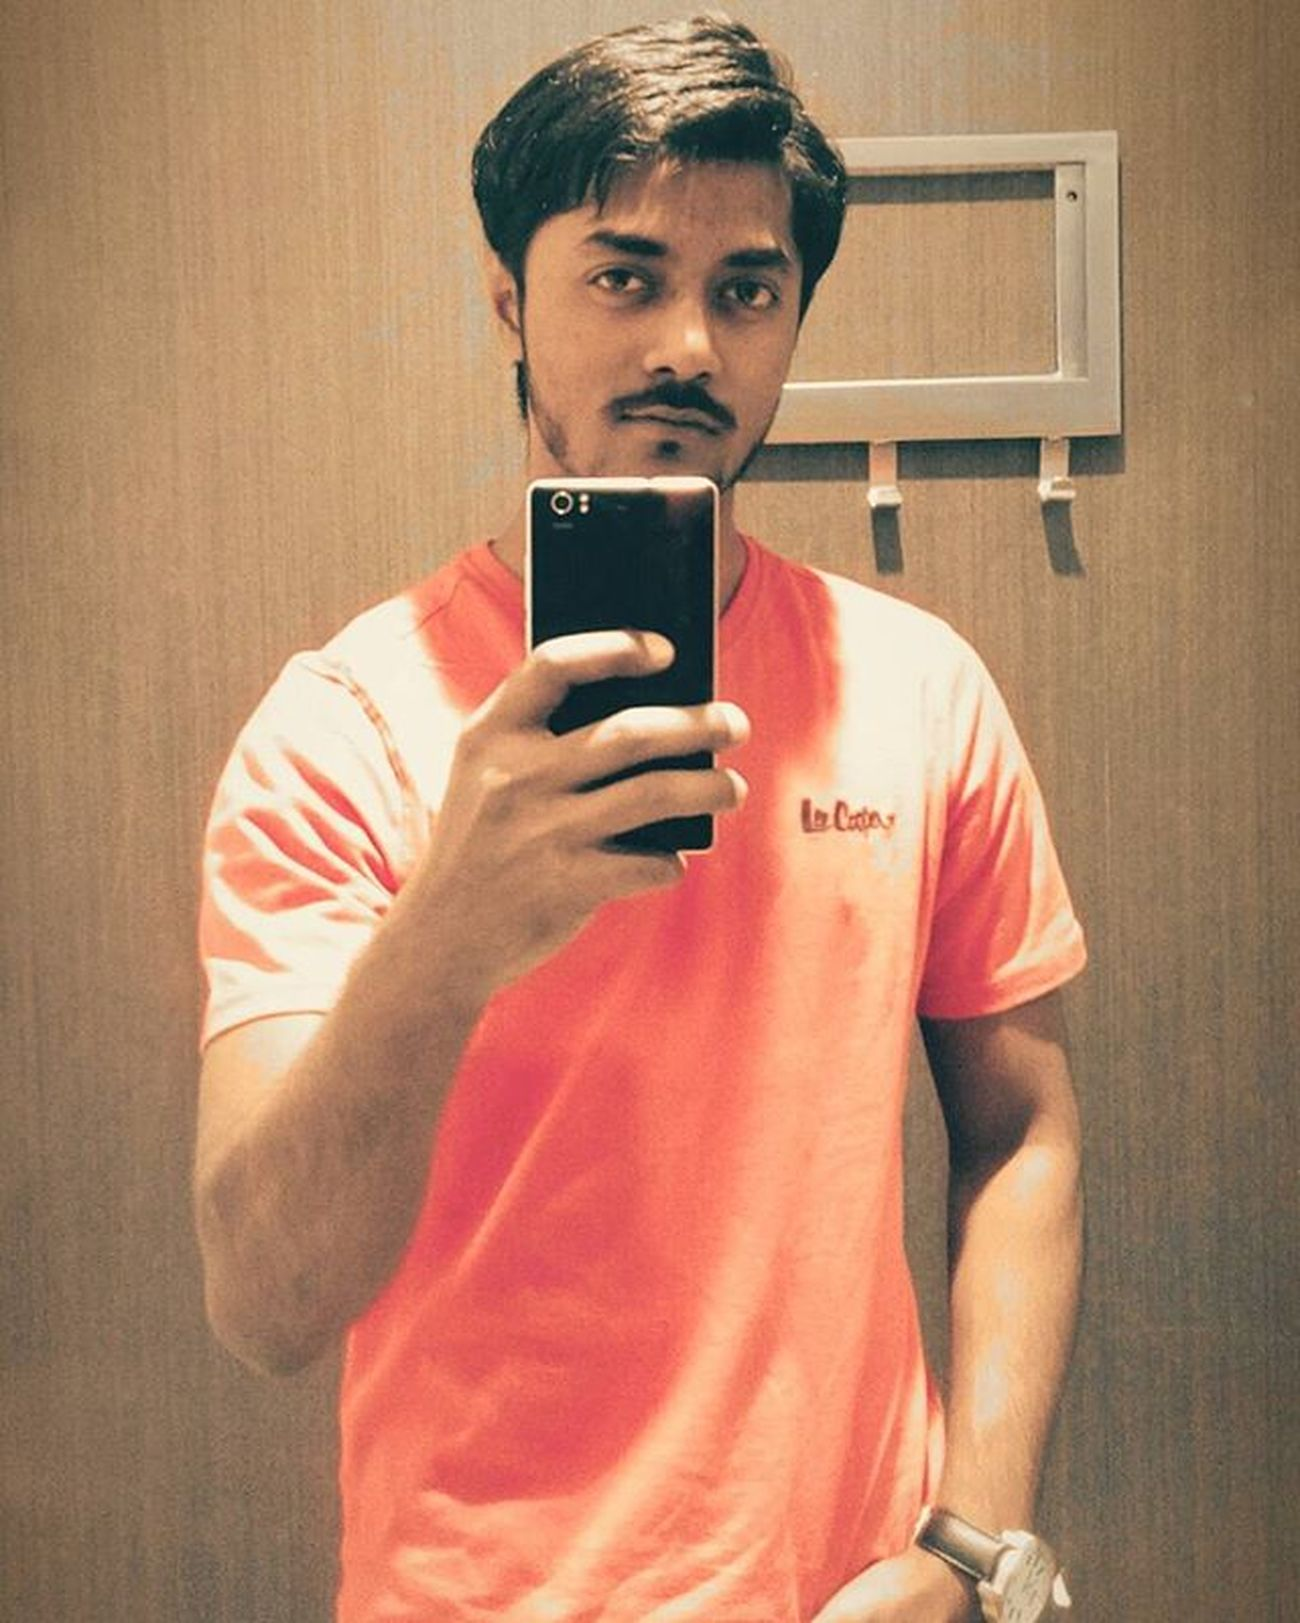 Do I seriously looking hawt ???? Sexymen Beards Beautiful Beardgang Trancefamily Tranceartist Uplifting World Lovely Instagram Red Dude AlwaysTrance Fitness Fit Happy Hurt Lost Peace PERFECTO Eyes Changingroomselfie LOL